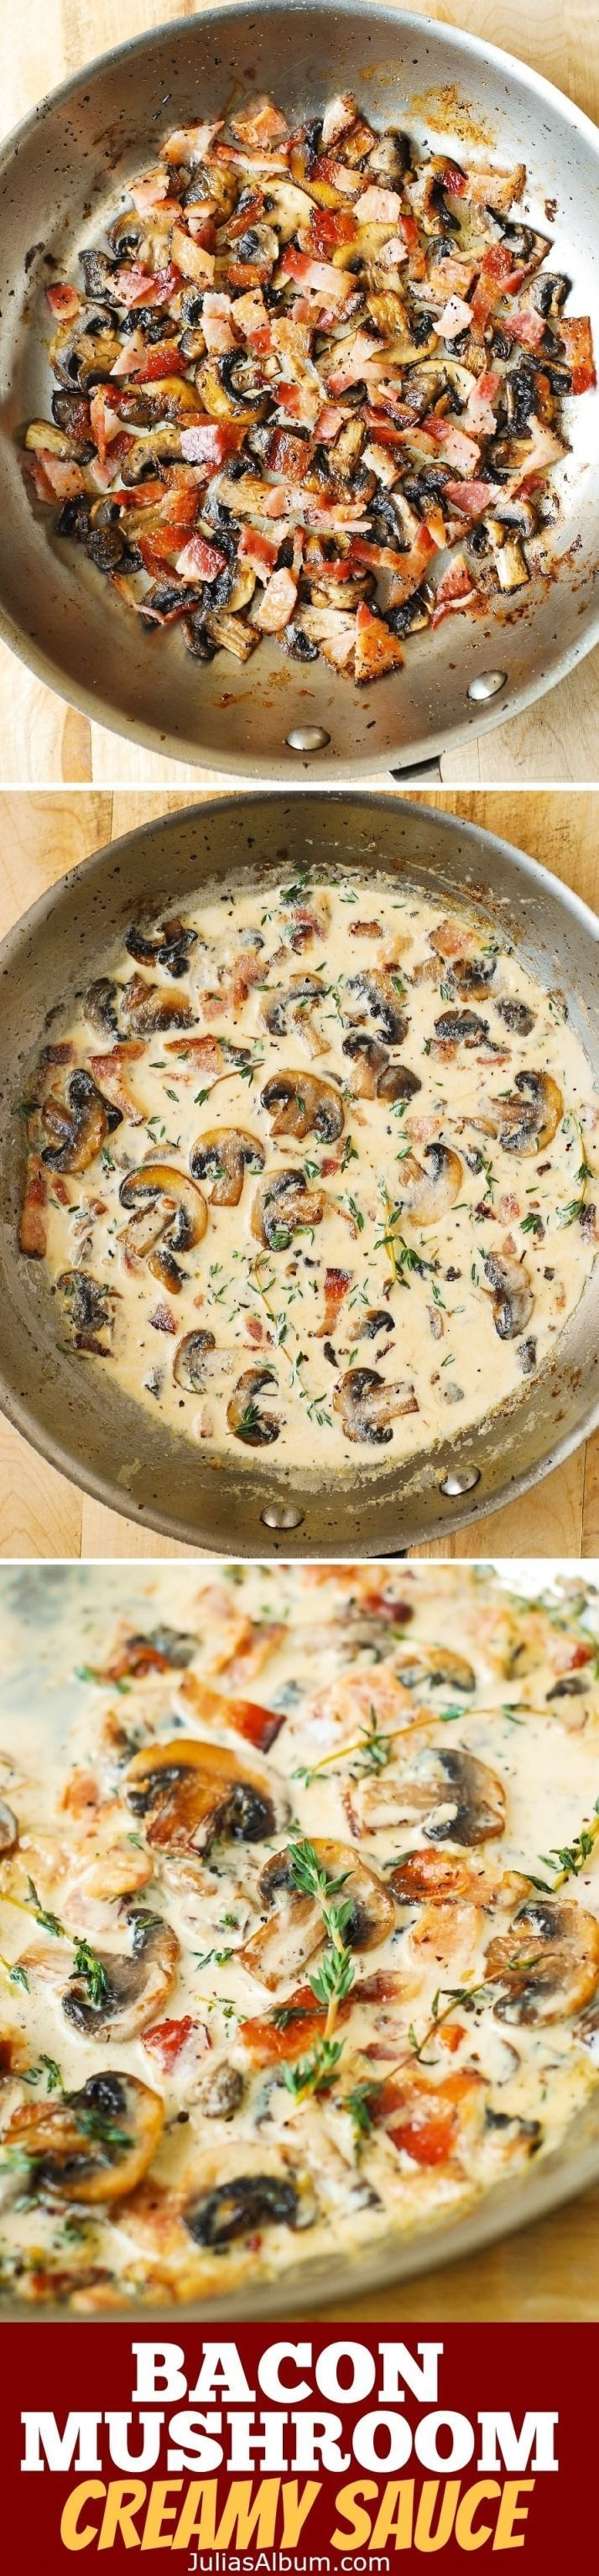 Creamy Mushroom Sauce with Bacon and Thyme - a great accompaniment to baked and grilled meats, chicken, pork, steaks. Gluten free, 30-minute recipe. (Gluten Free Recipes Pork)